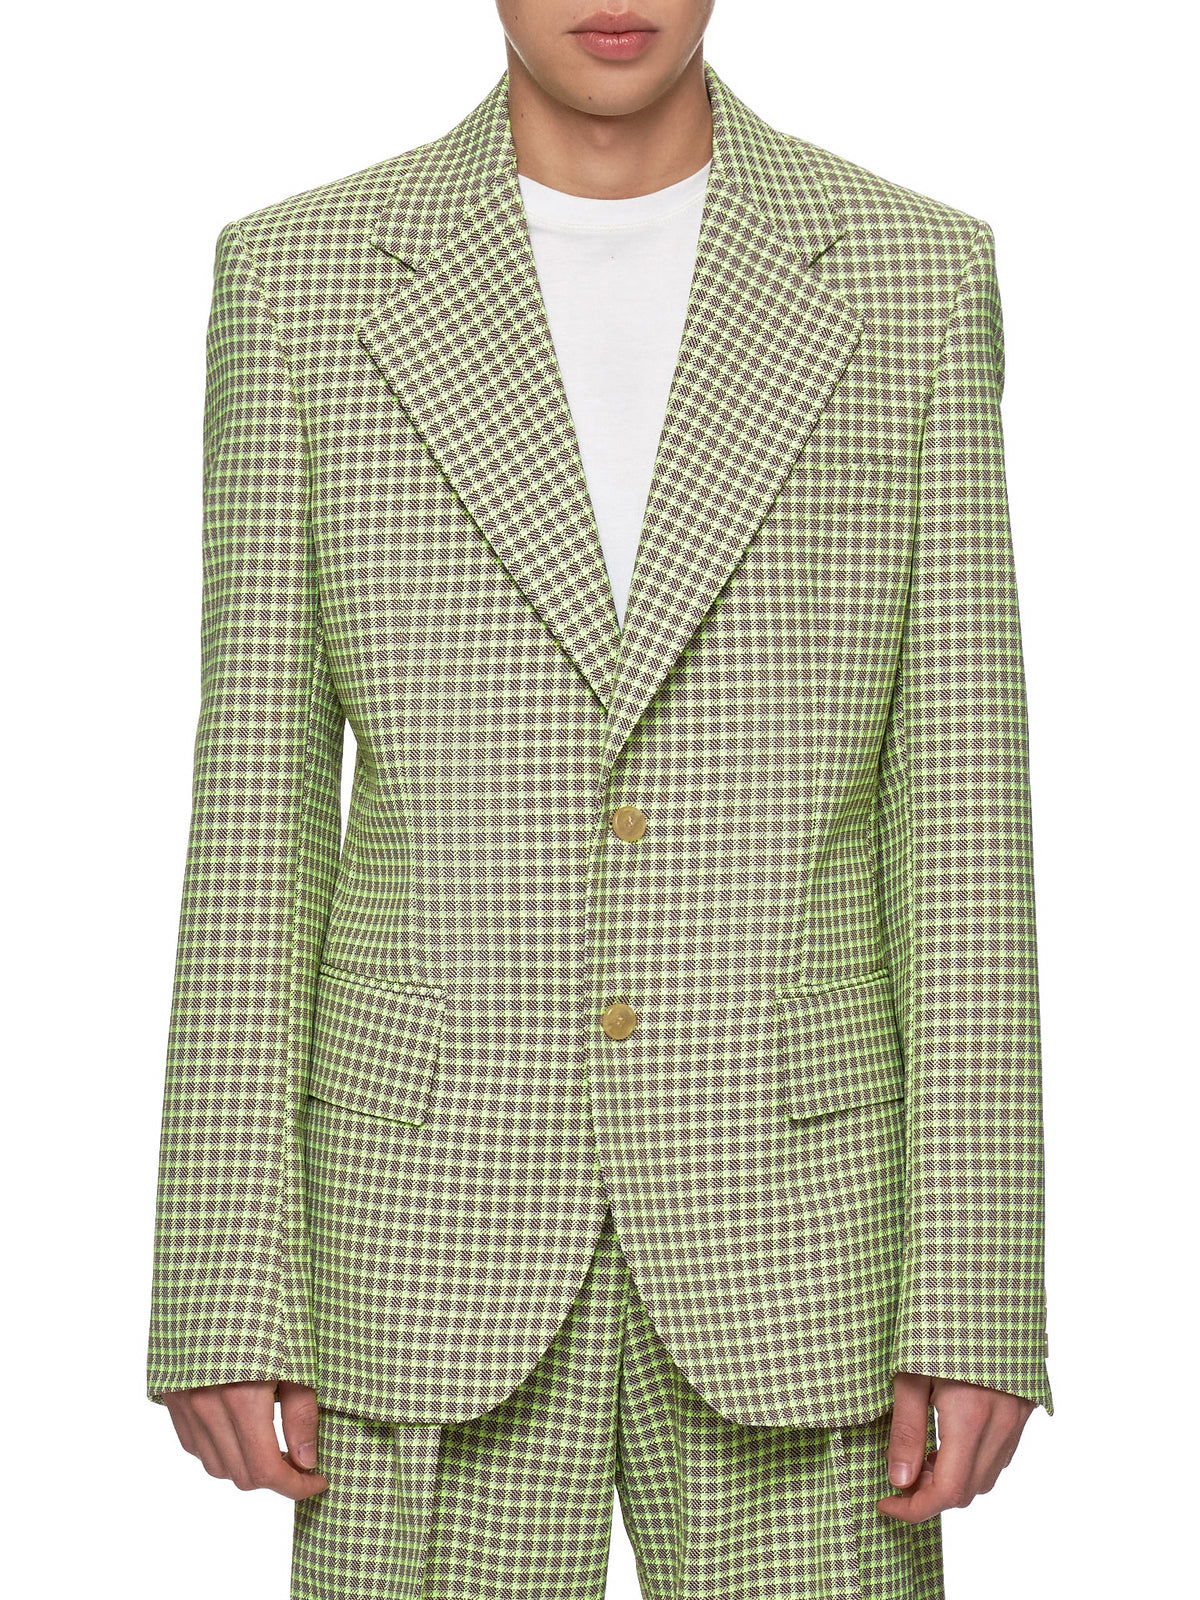 Wicked Jacket (1002-NEON-YELLOW-CHECKS)